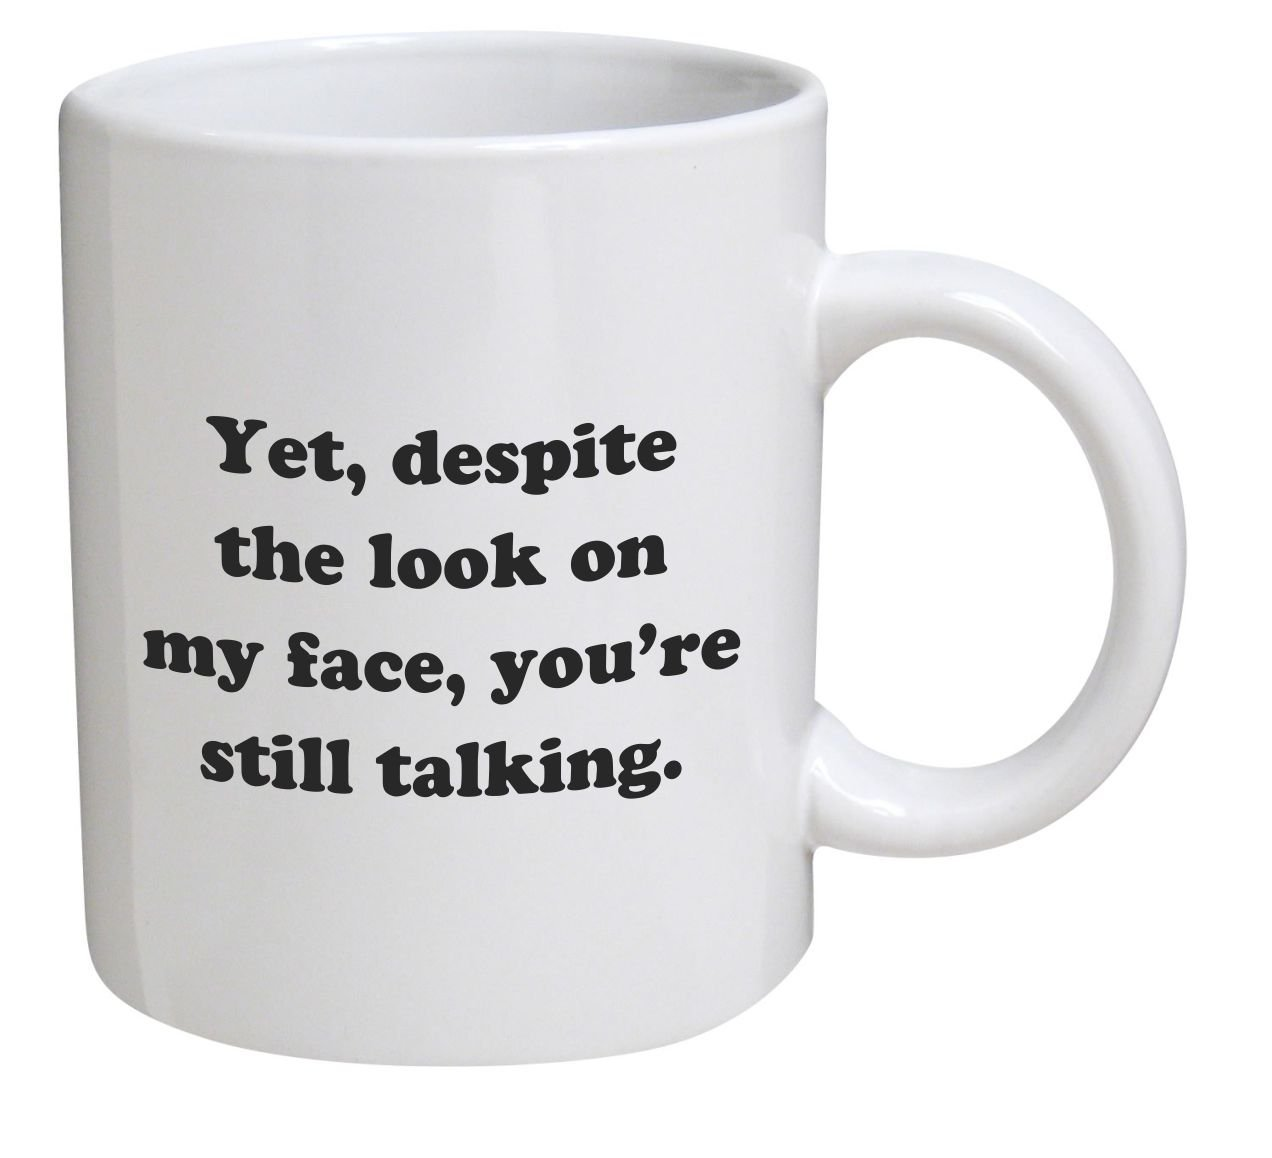 Funny Mug - Yet, despite the look on my face, you're still talking - 11 OZ Coffee Mugs - Inspirational gifts and sarcasm Fred And Levine SYNCHKG062478